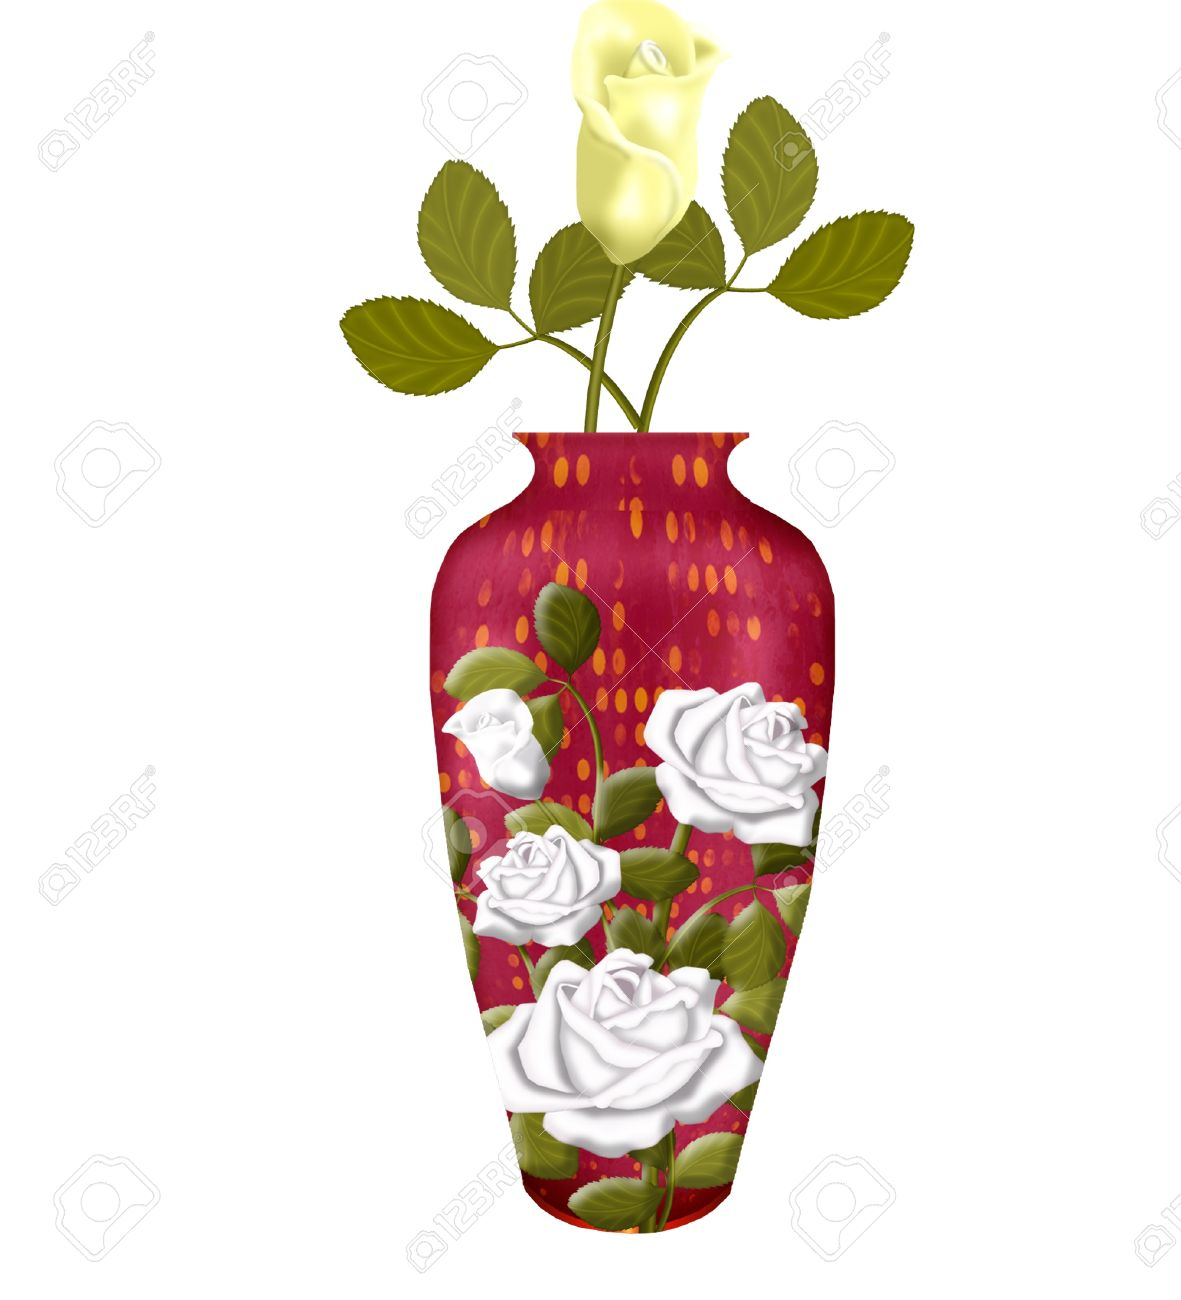 Flower Vase Stock Photos. Royalty Free Flower Vase Images